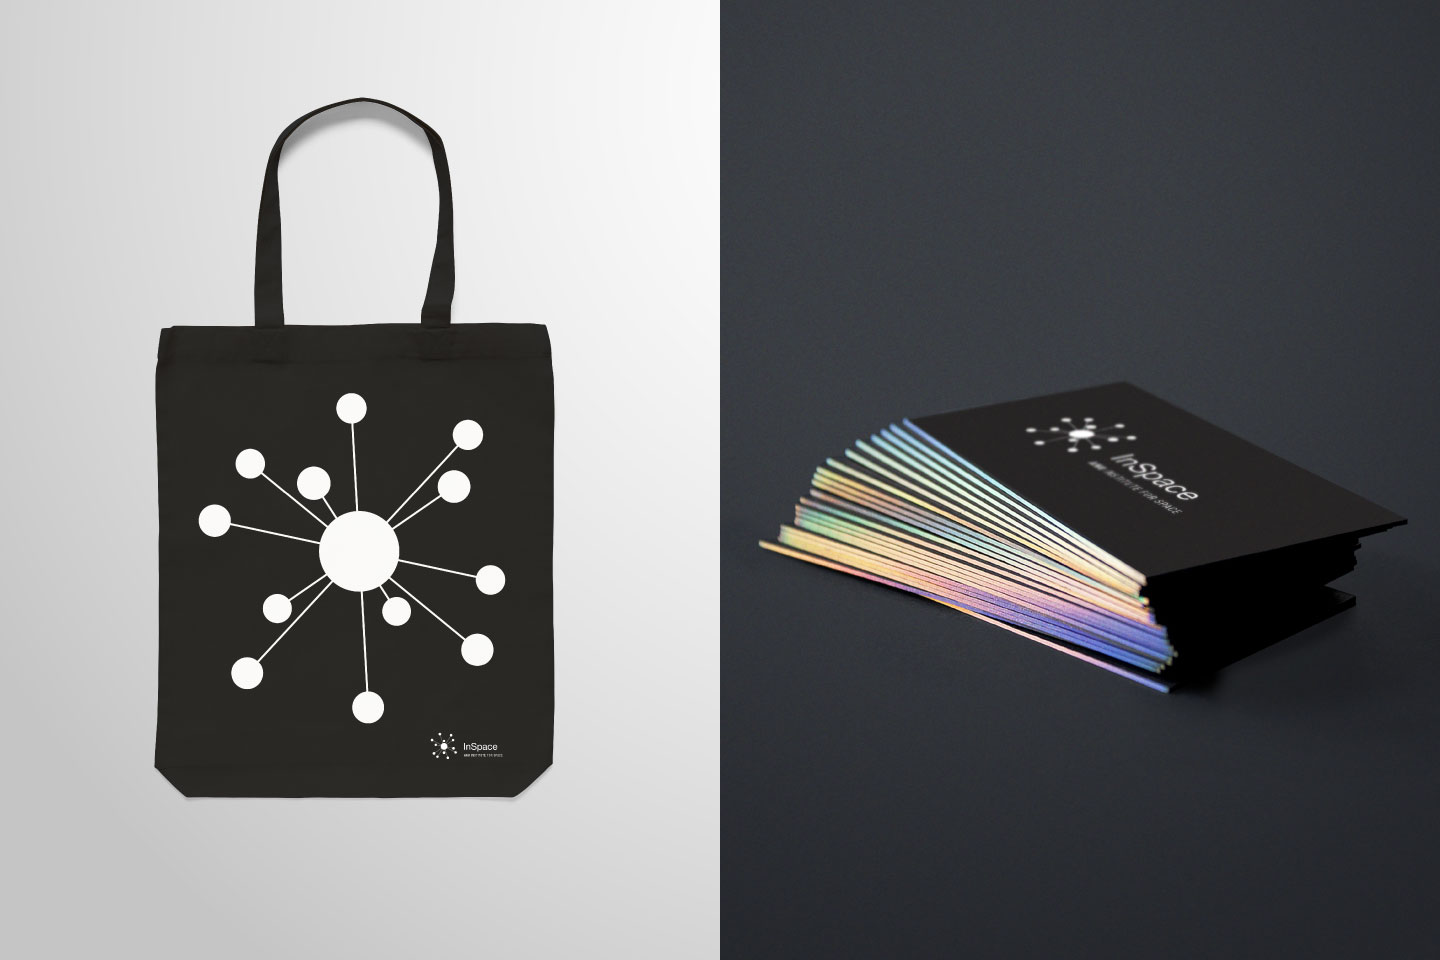 Branded tote bag and business cards